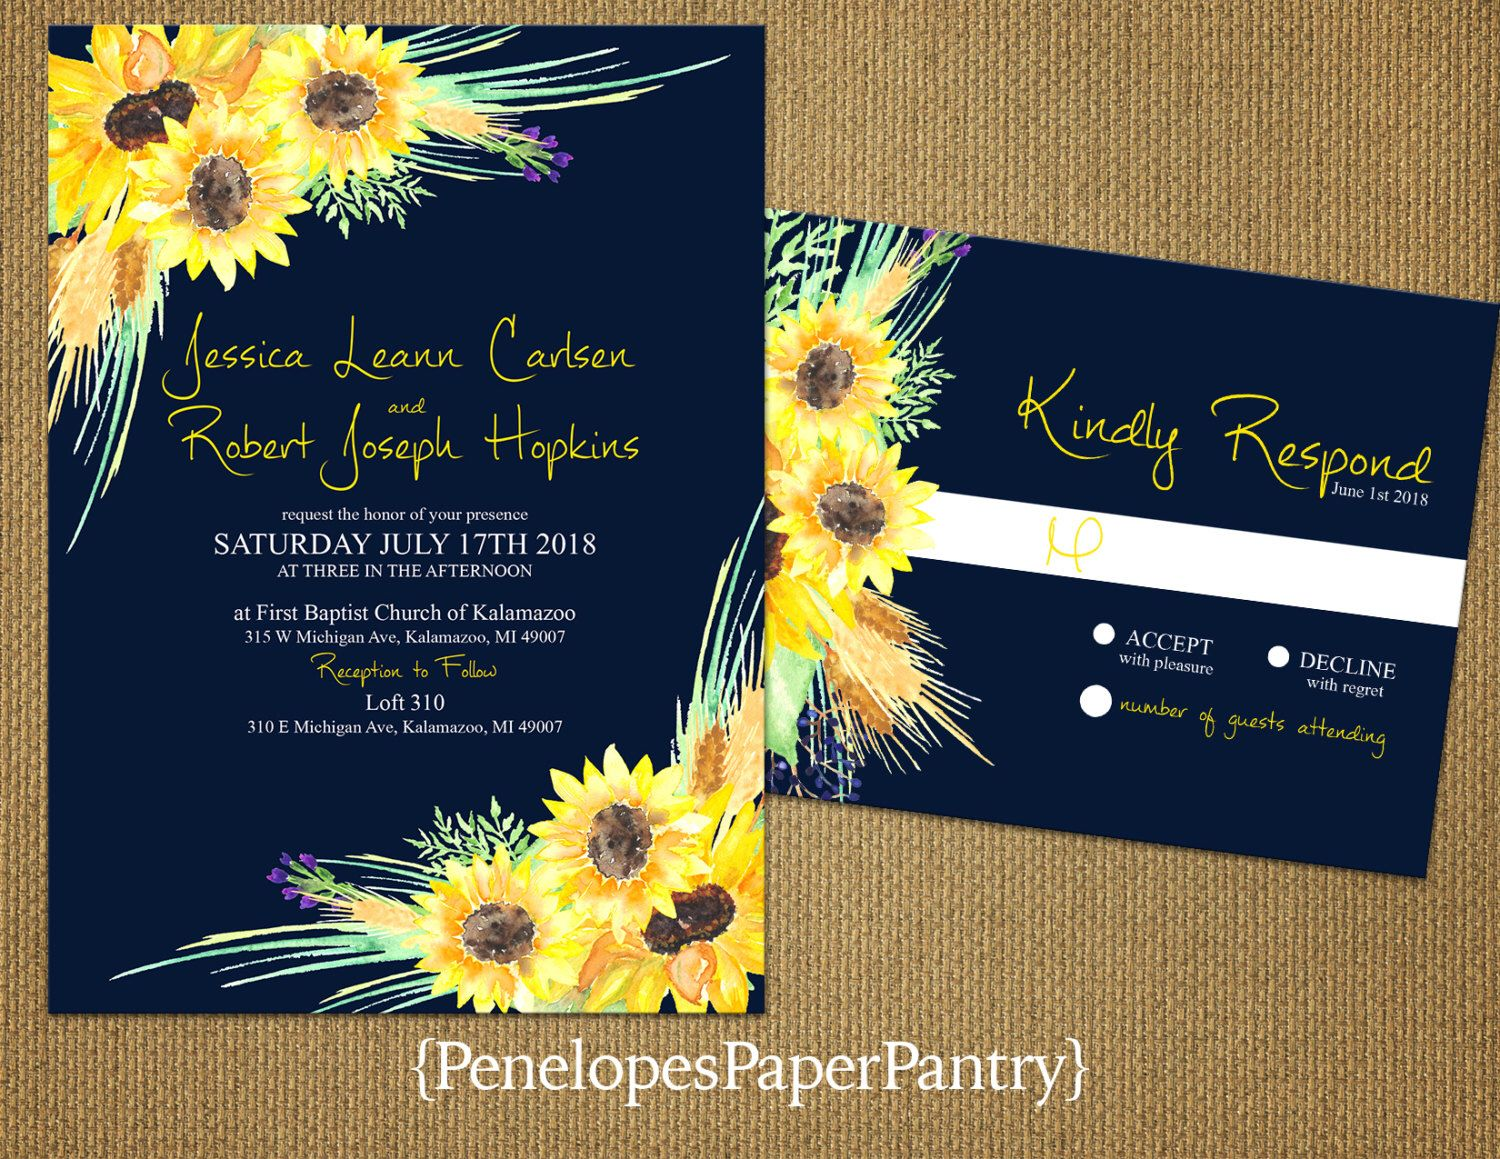 Rustic Fall Wedding InvitationsSunflowers On A Navy BackgroundRomanticElegantTraditionalOpt RSVP CardCustomizable With White Envelopes By